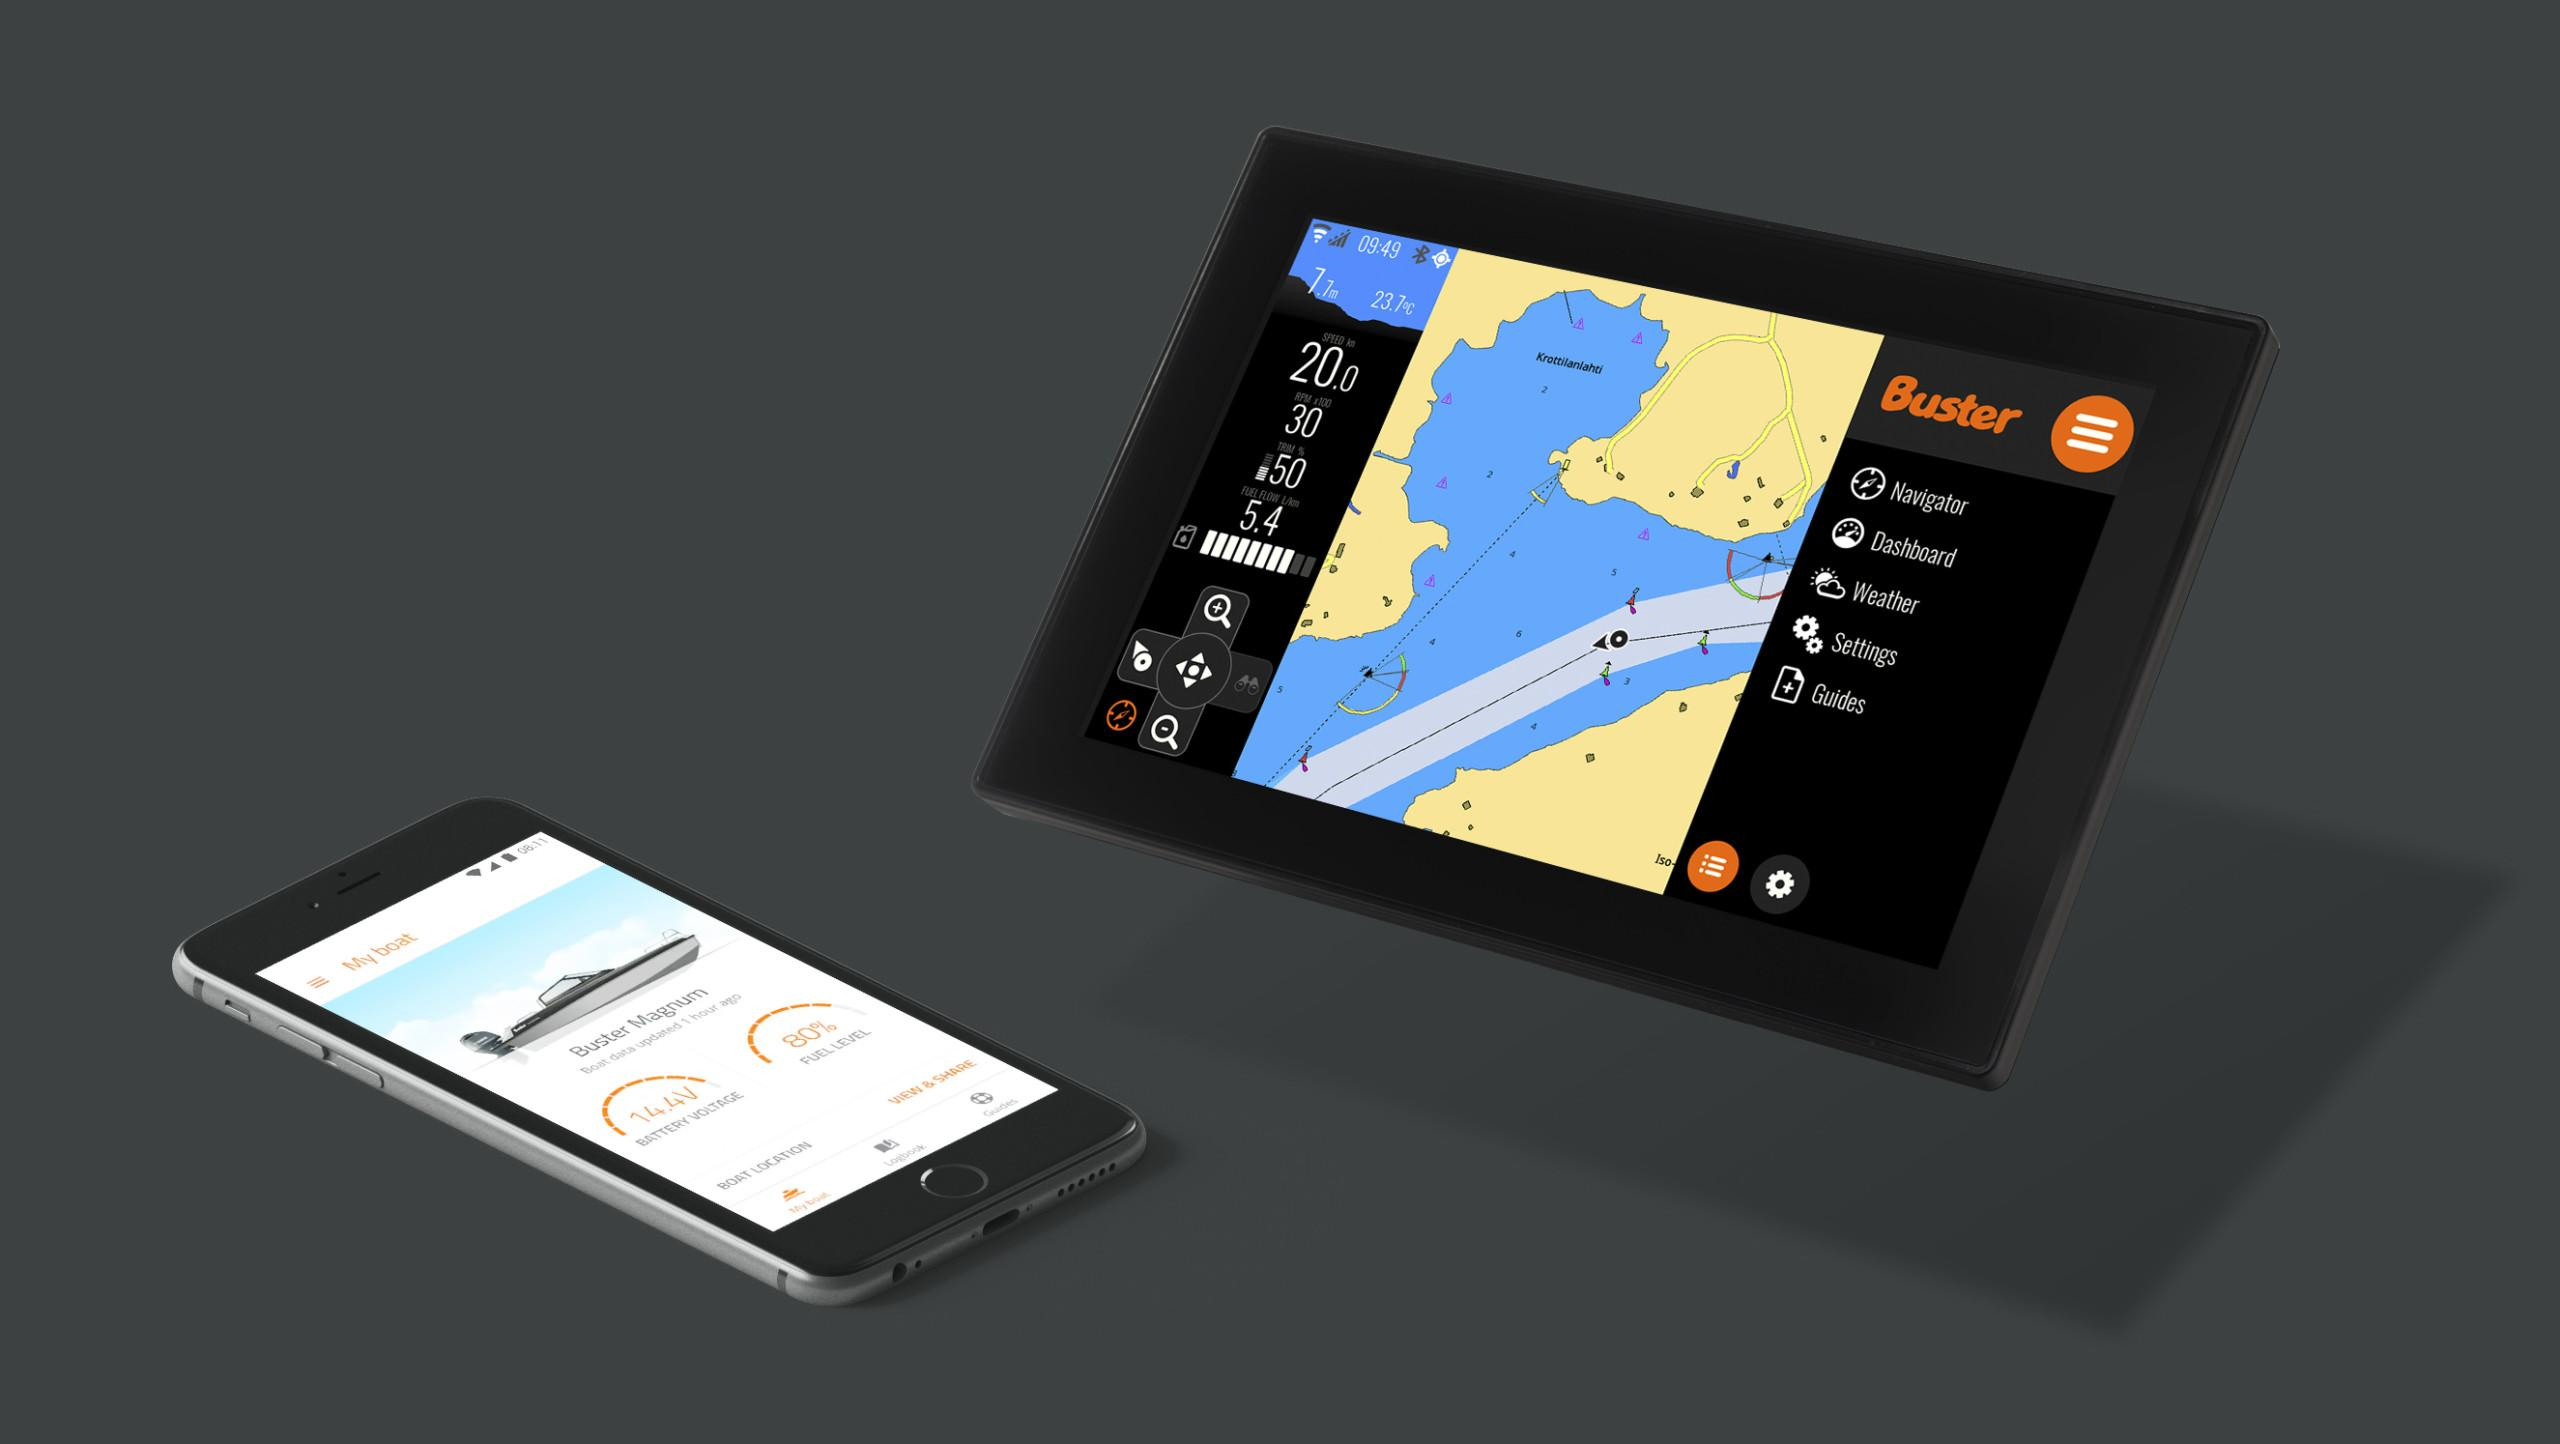 Buster Boats launches the first ever Q-based mobile app